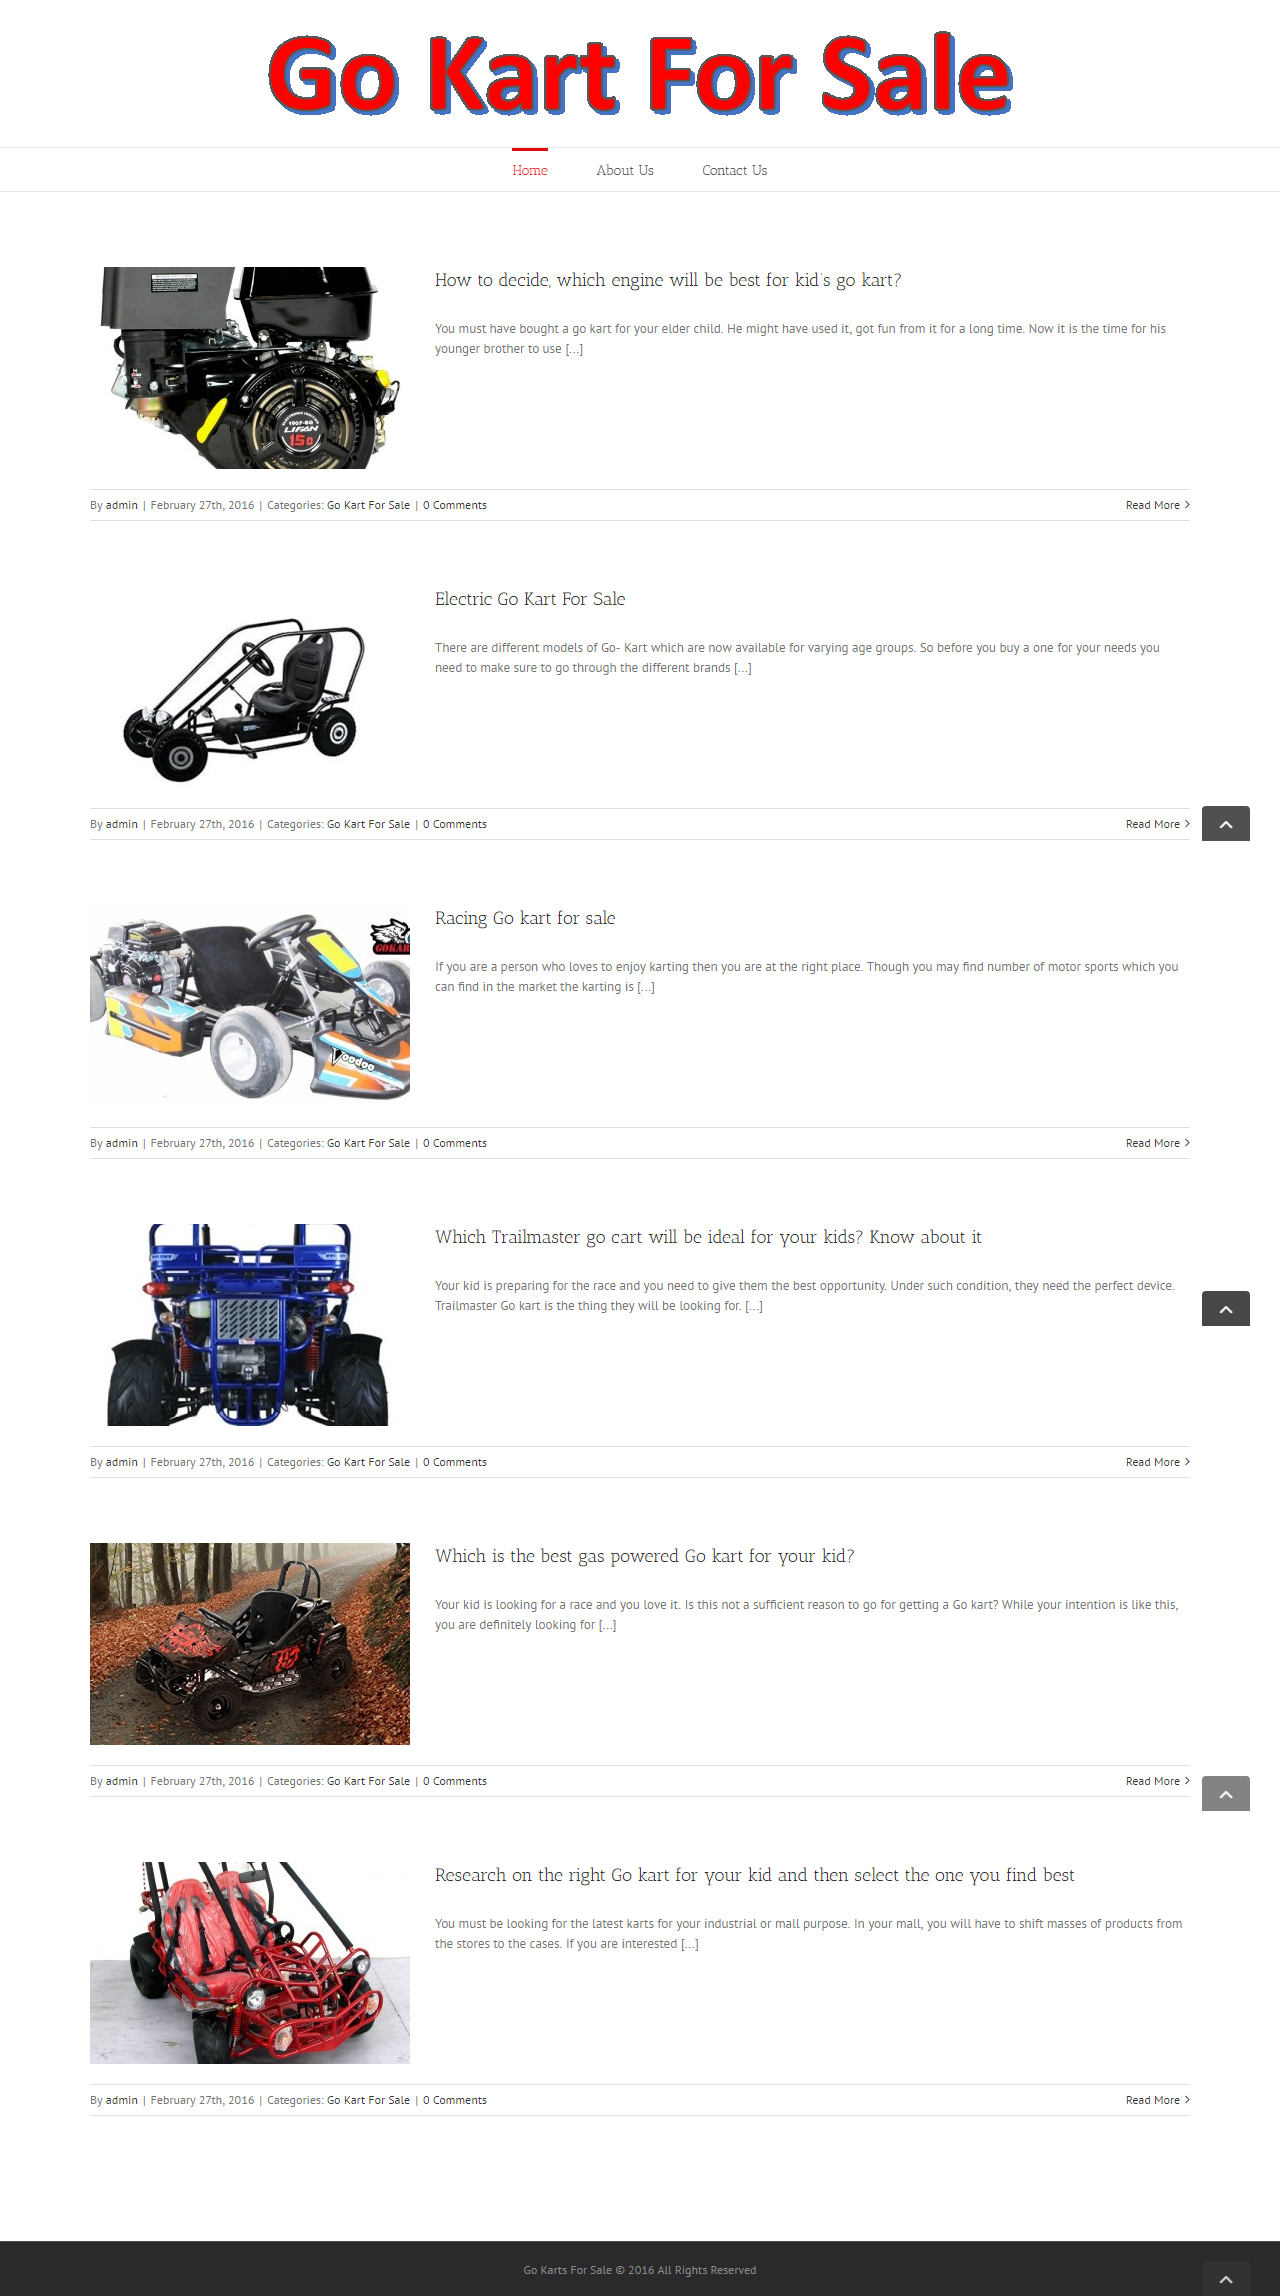 Go Kart For Sale have been selling and distributing Go karts as well as Go